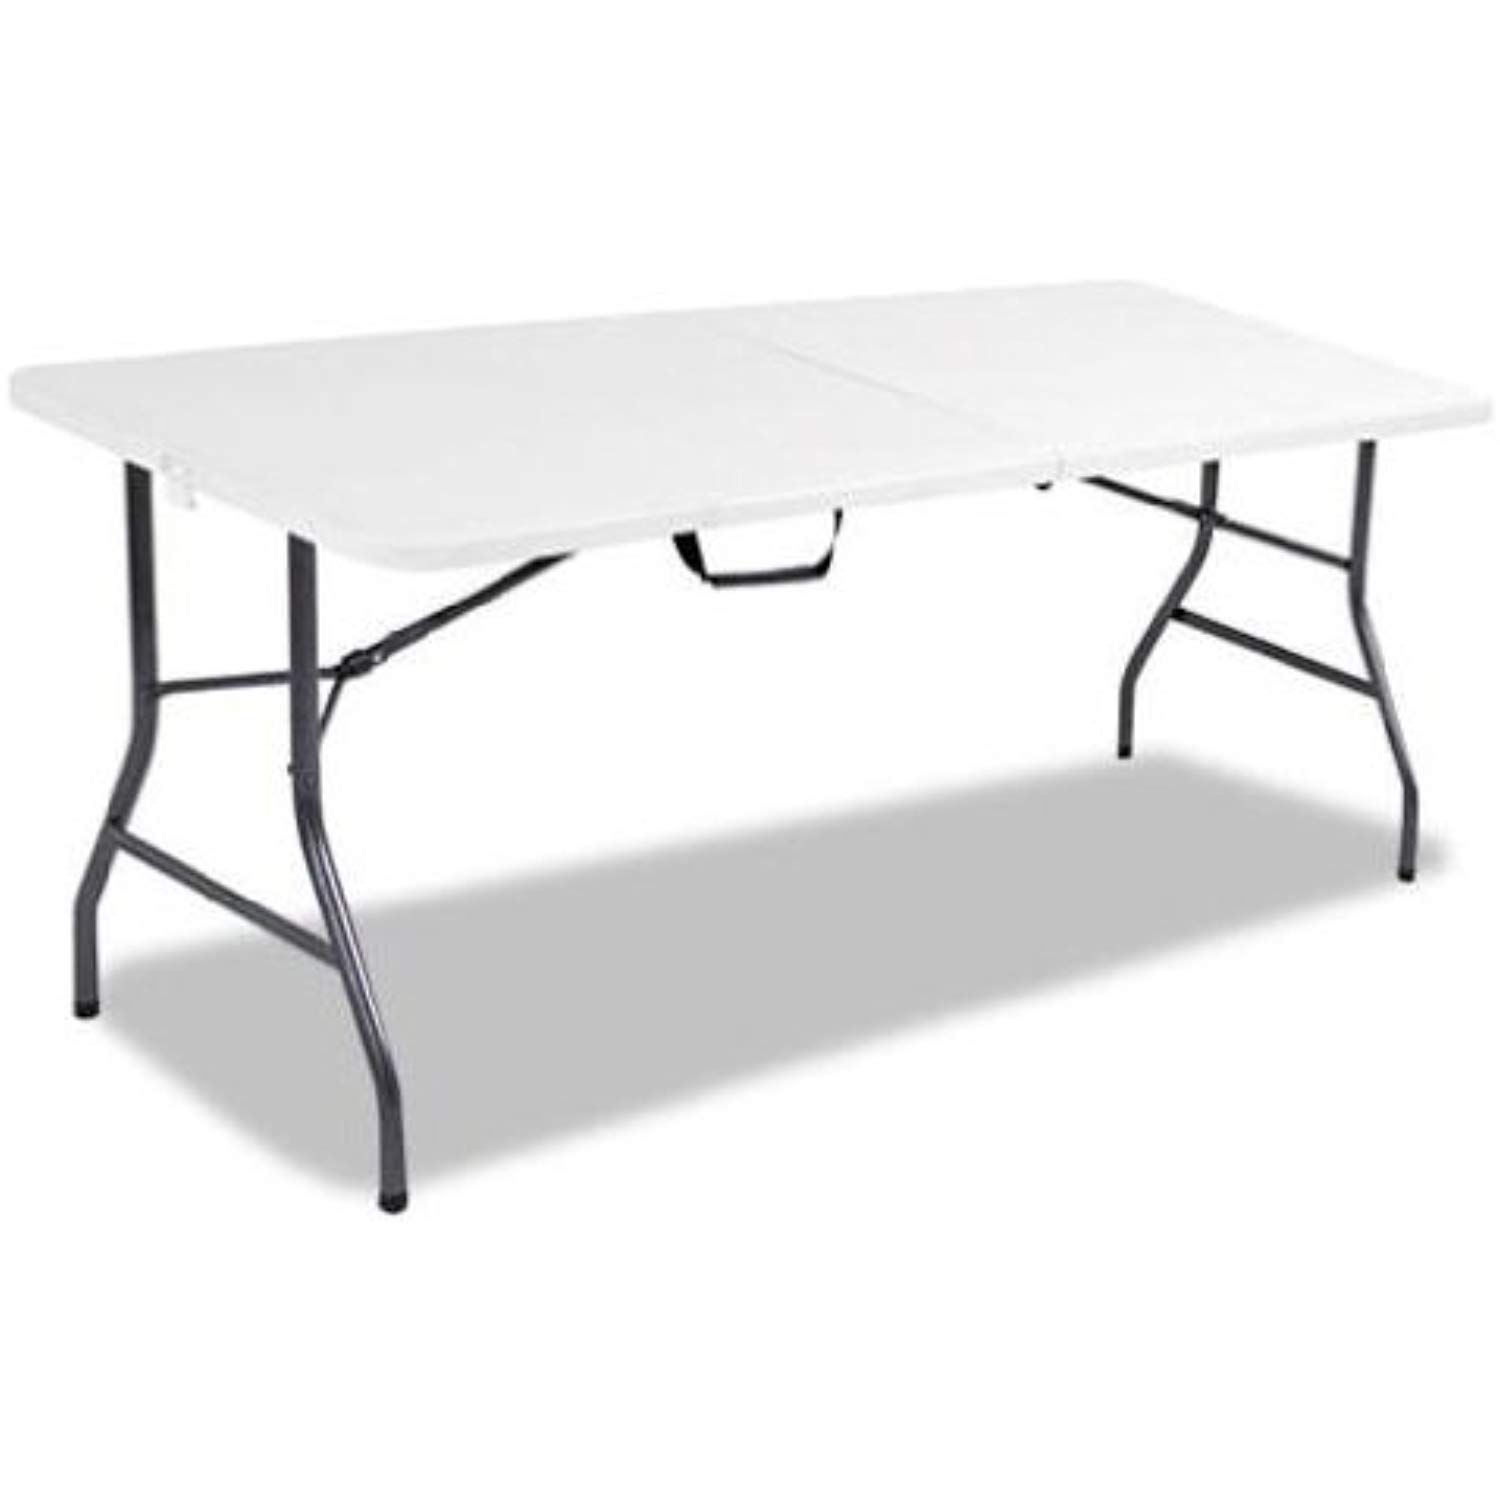 Cosco Products 6 Feet Centerfold Folding Table Color White Specked Pewter Complete Set Check Out This Great Product This Is Folding Table Cosco Table